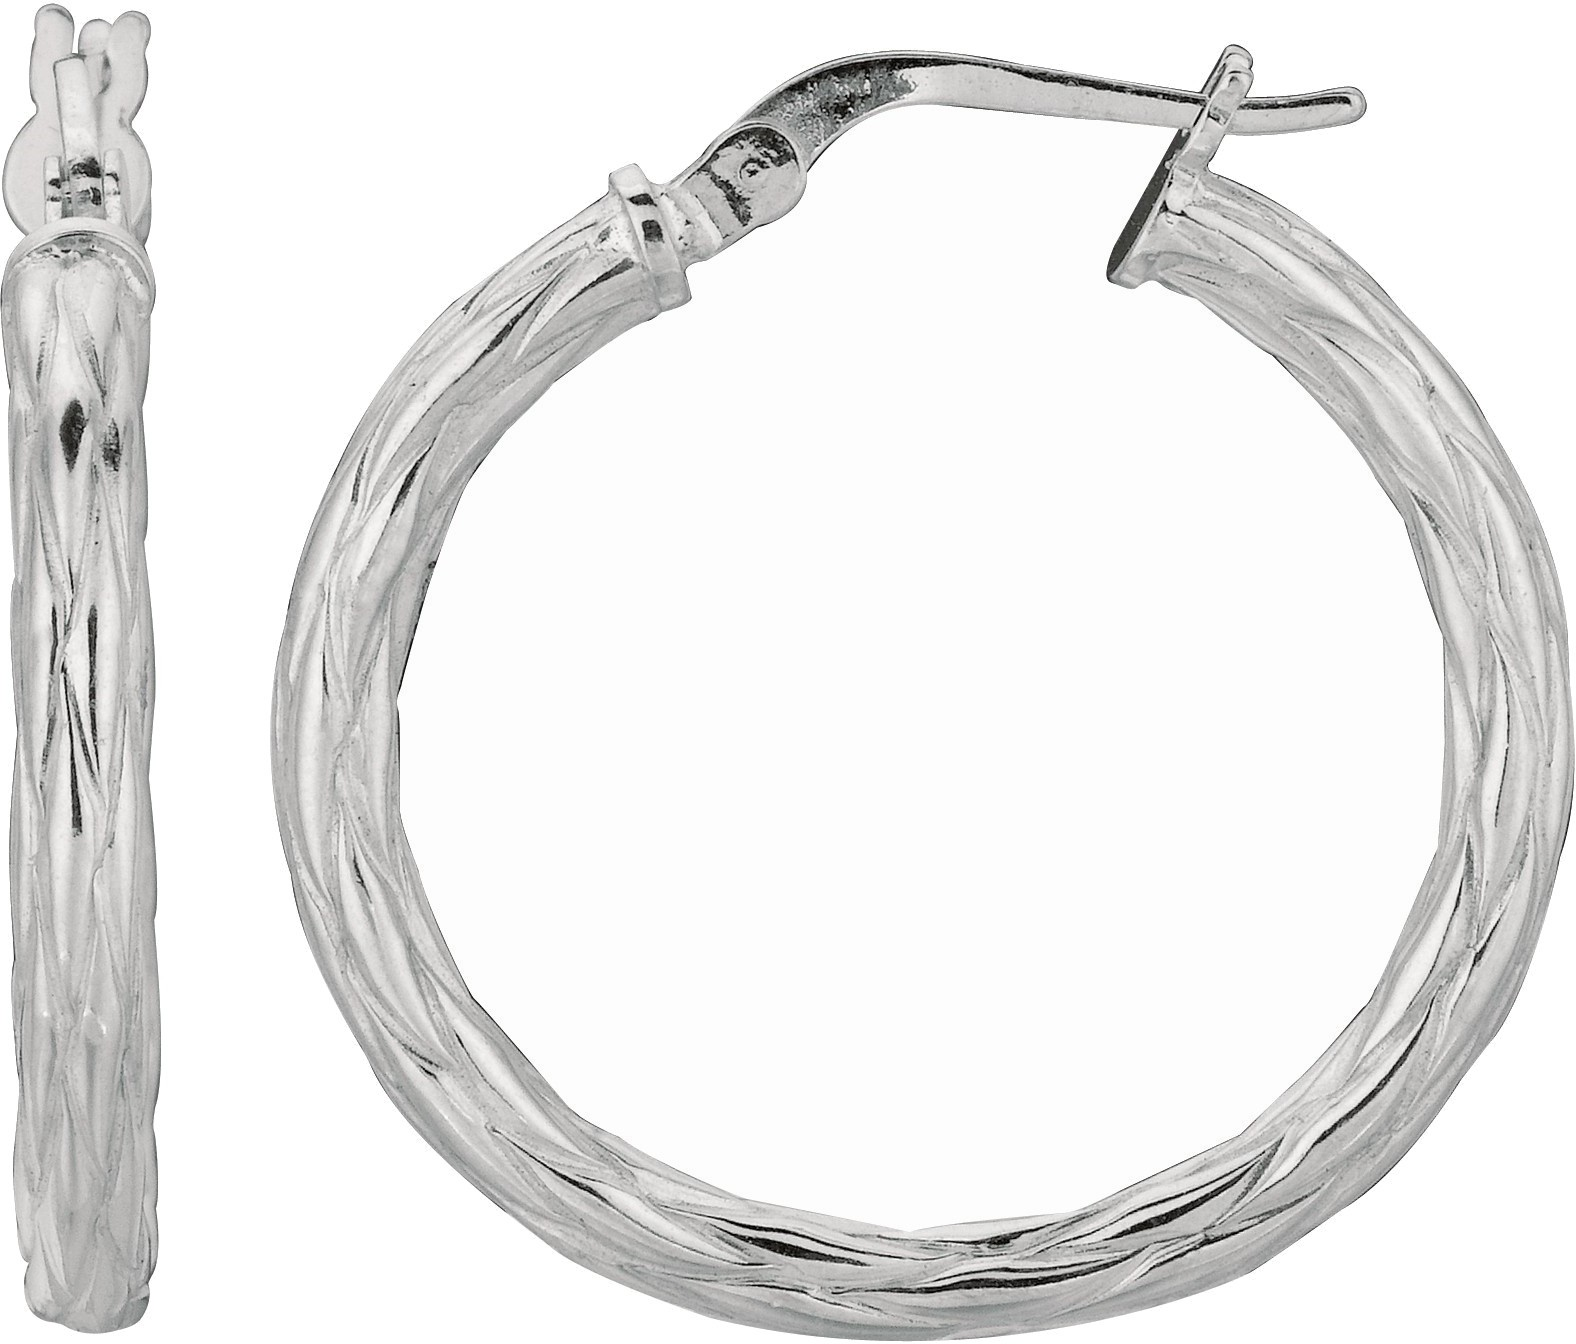 "Silver Rhodium Plated Shiny 3.0x22mm (0.12""x0.87"") Twisted Hoop Earrings"